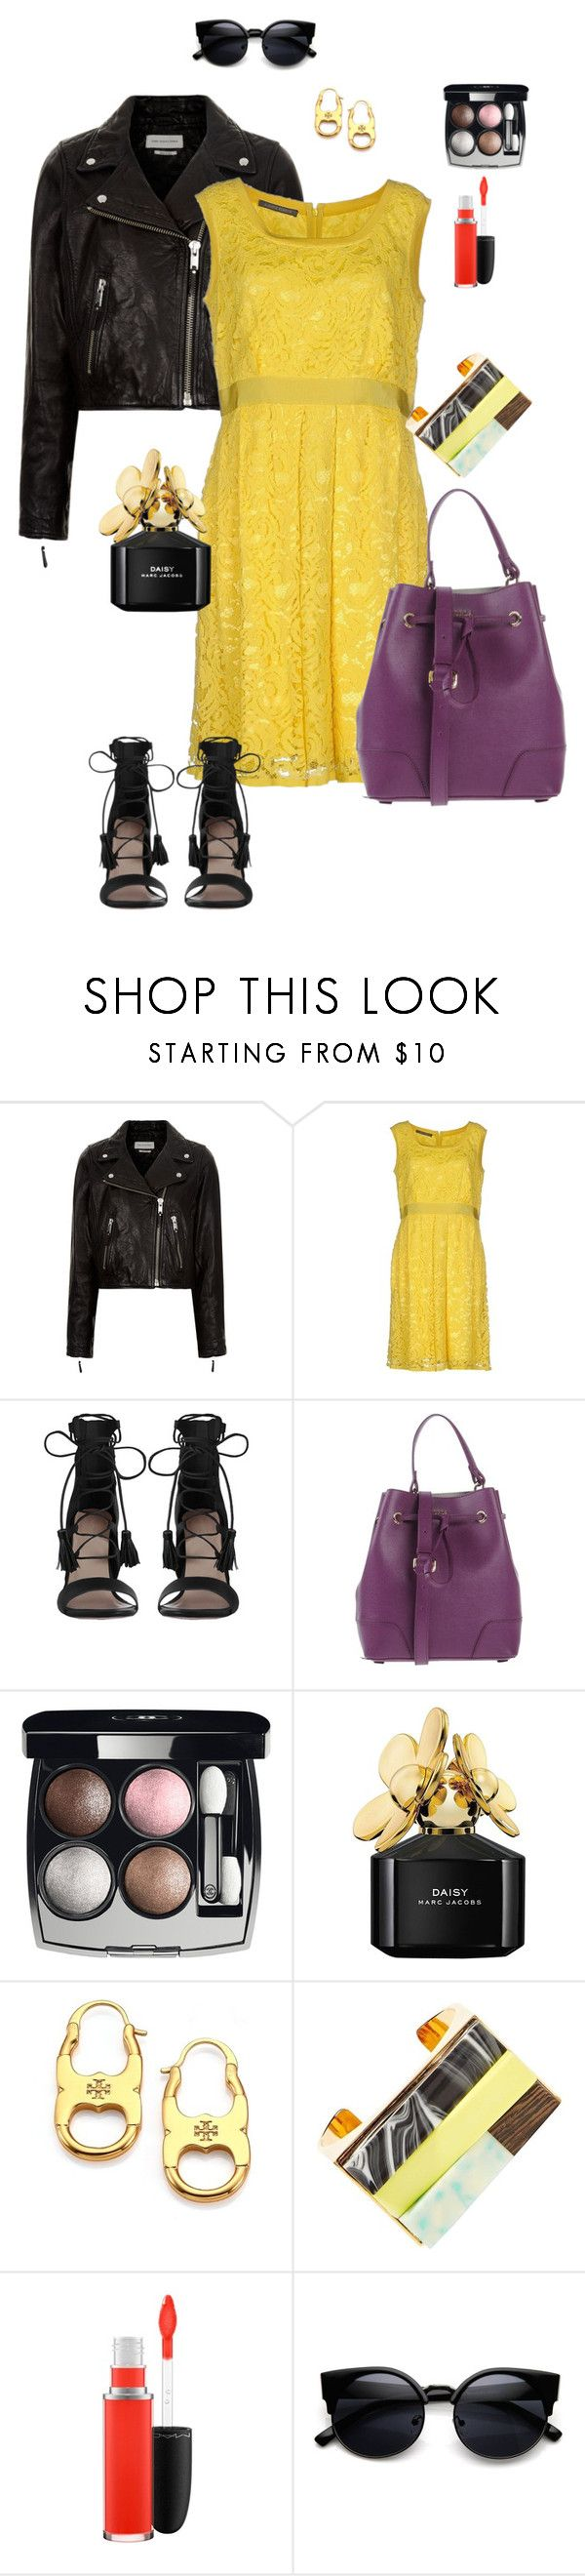 """yellow lace dress"" by ulusia-1 ❤ liked on Polyvore featuring Étoile Isabel Marant, Alberta Ferretti, Zimmermann, Furla, Chanel, Marc Jacobs, Tory Burch, STELLA McCARTNEY and MAC Cosmetics"